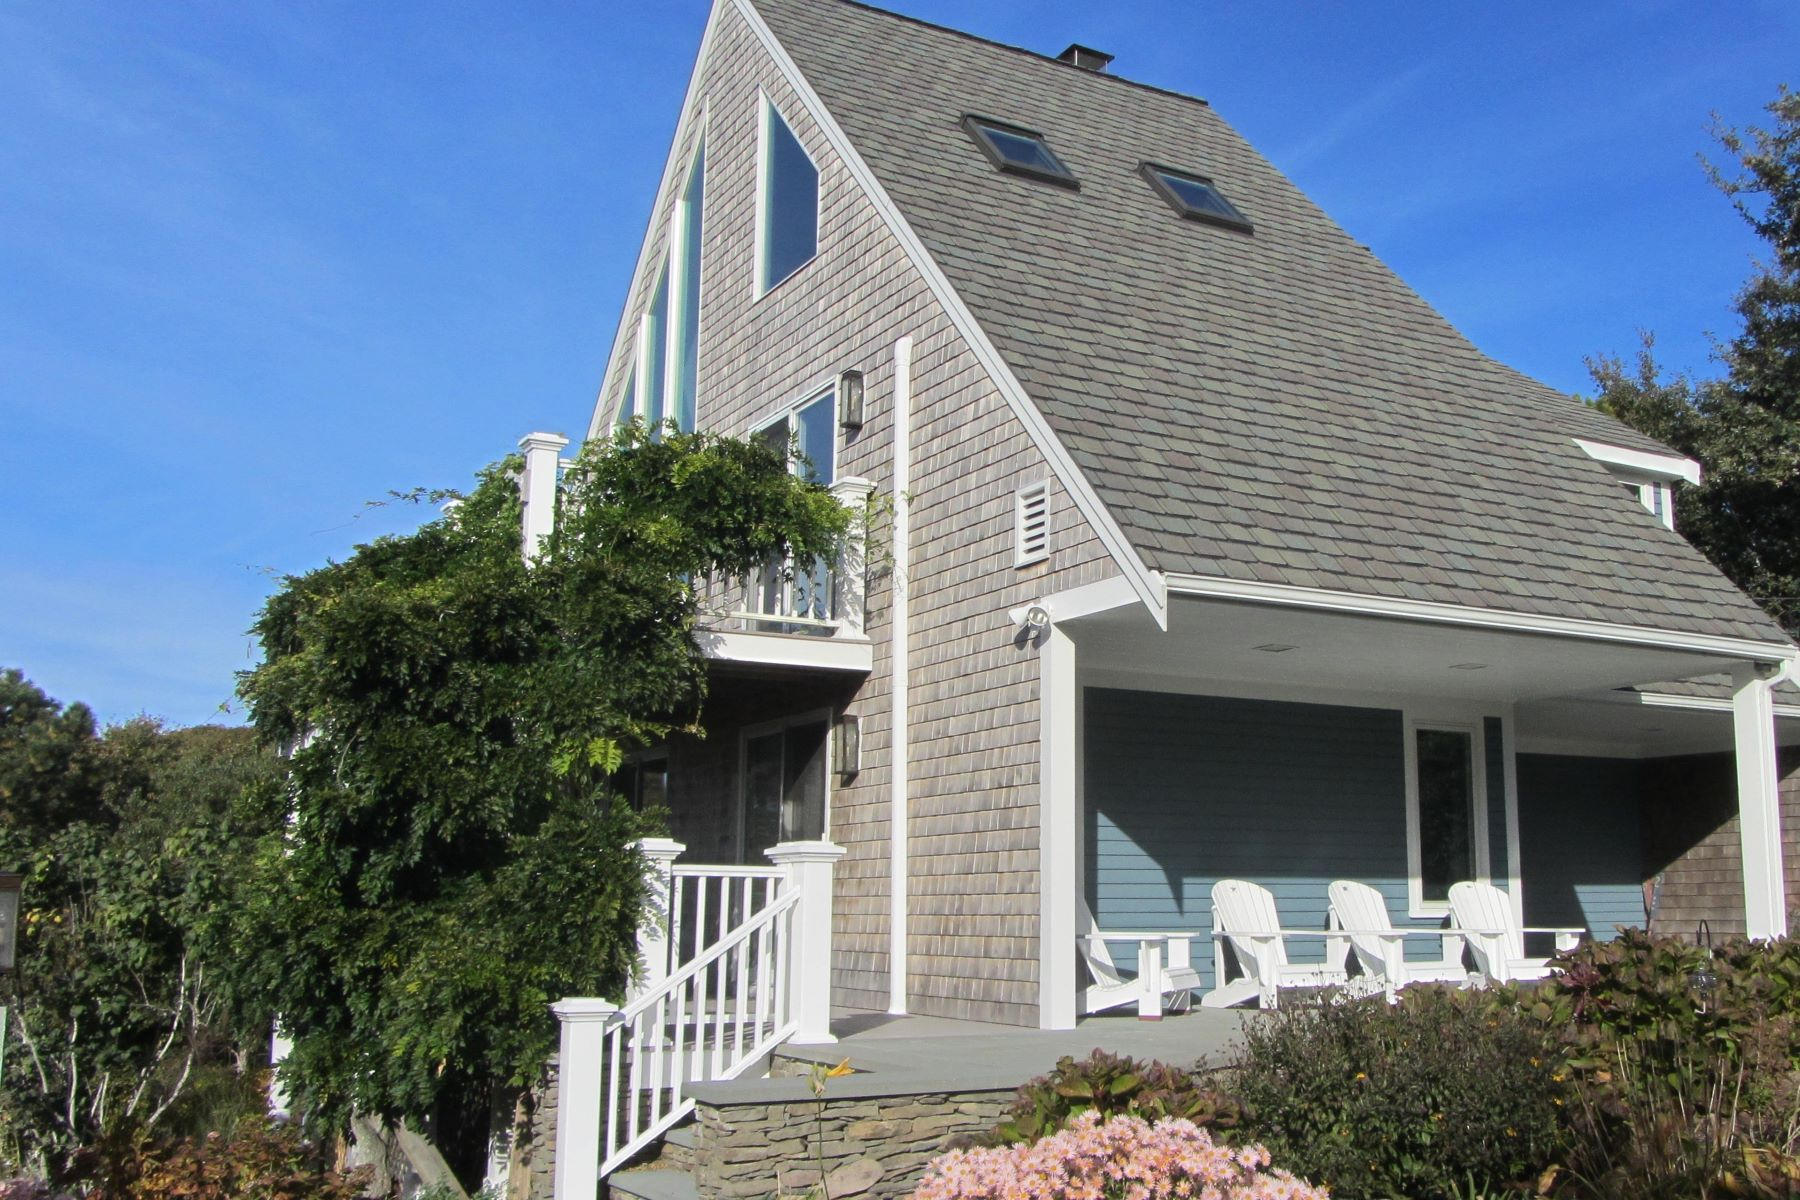 Casa Unifamiliar por un Venta en BAY VIEW BEACH HOUSE 52 Jonathan Drive Dennis, Massachusetts 02638 Estados Unidos